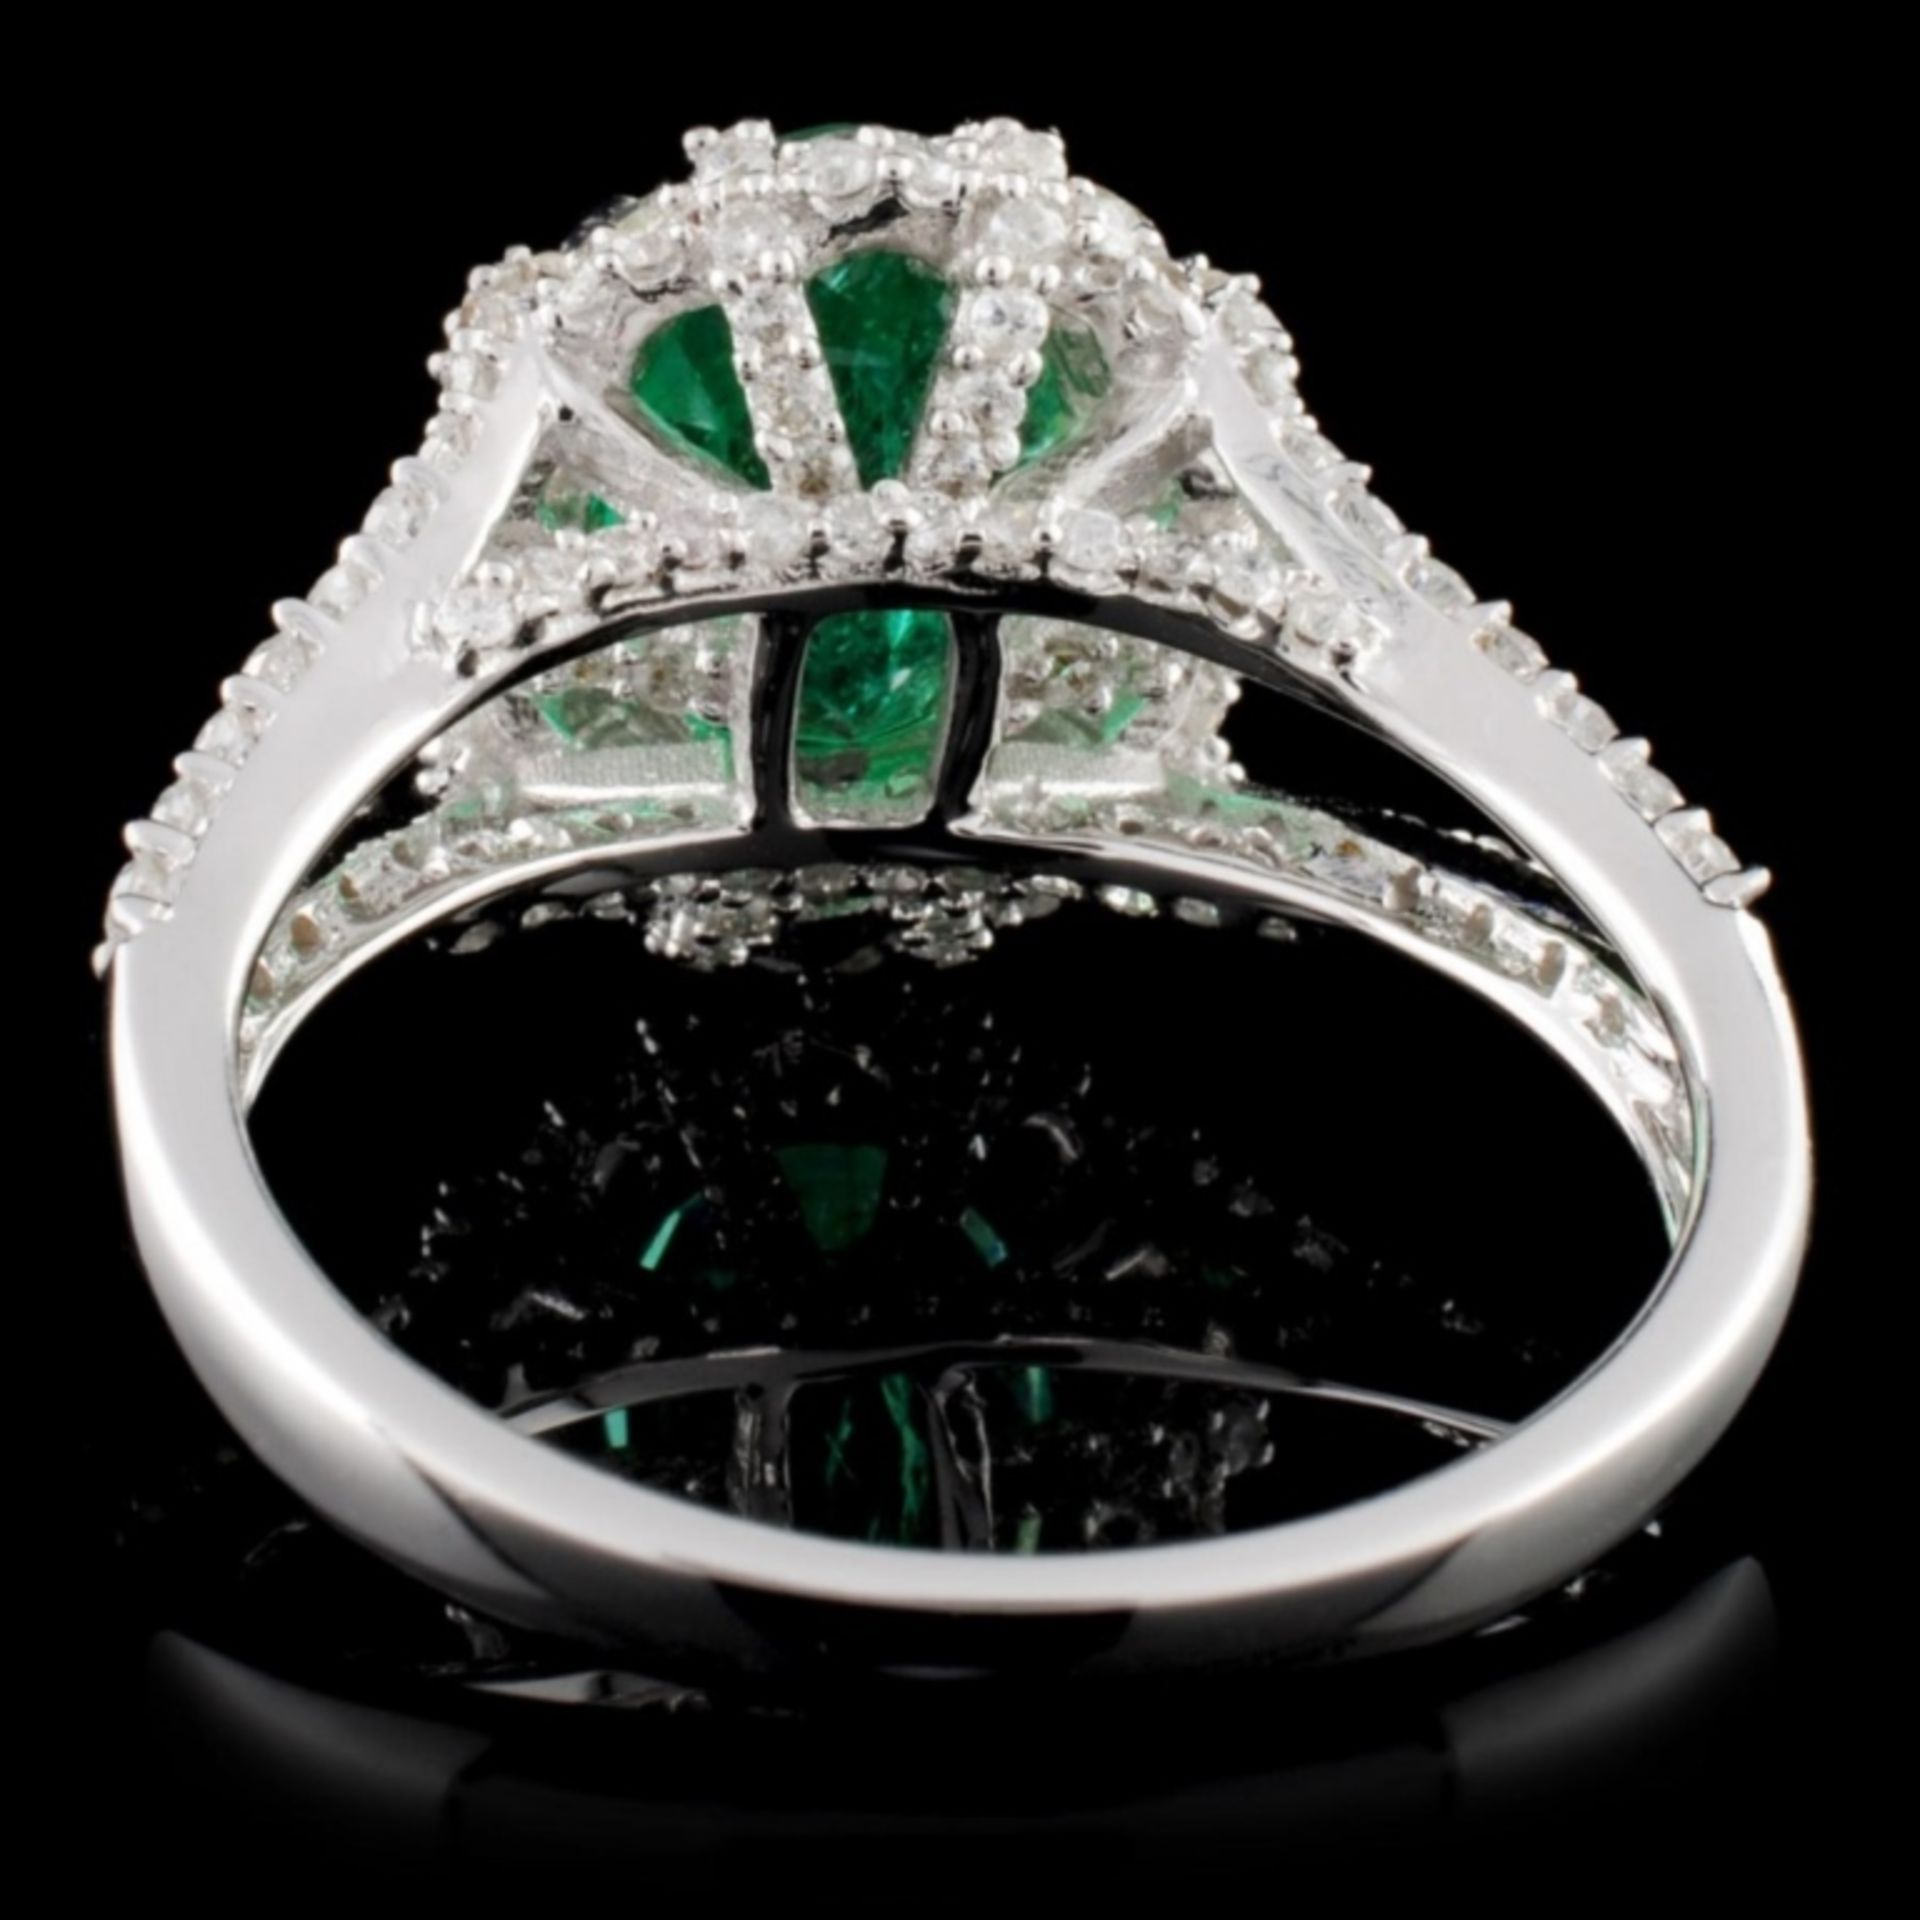 18K White Gold 2.25ct Emerald & 1.17ctw Diamond Ri - Image 3 of 4